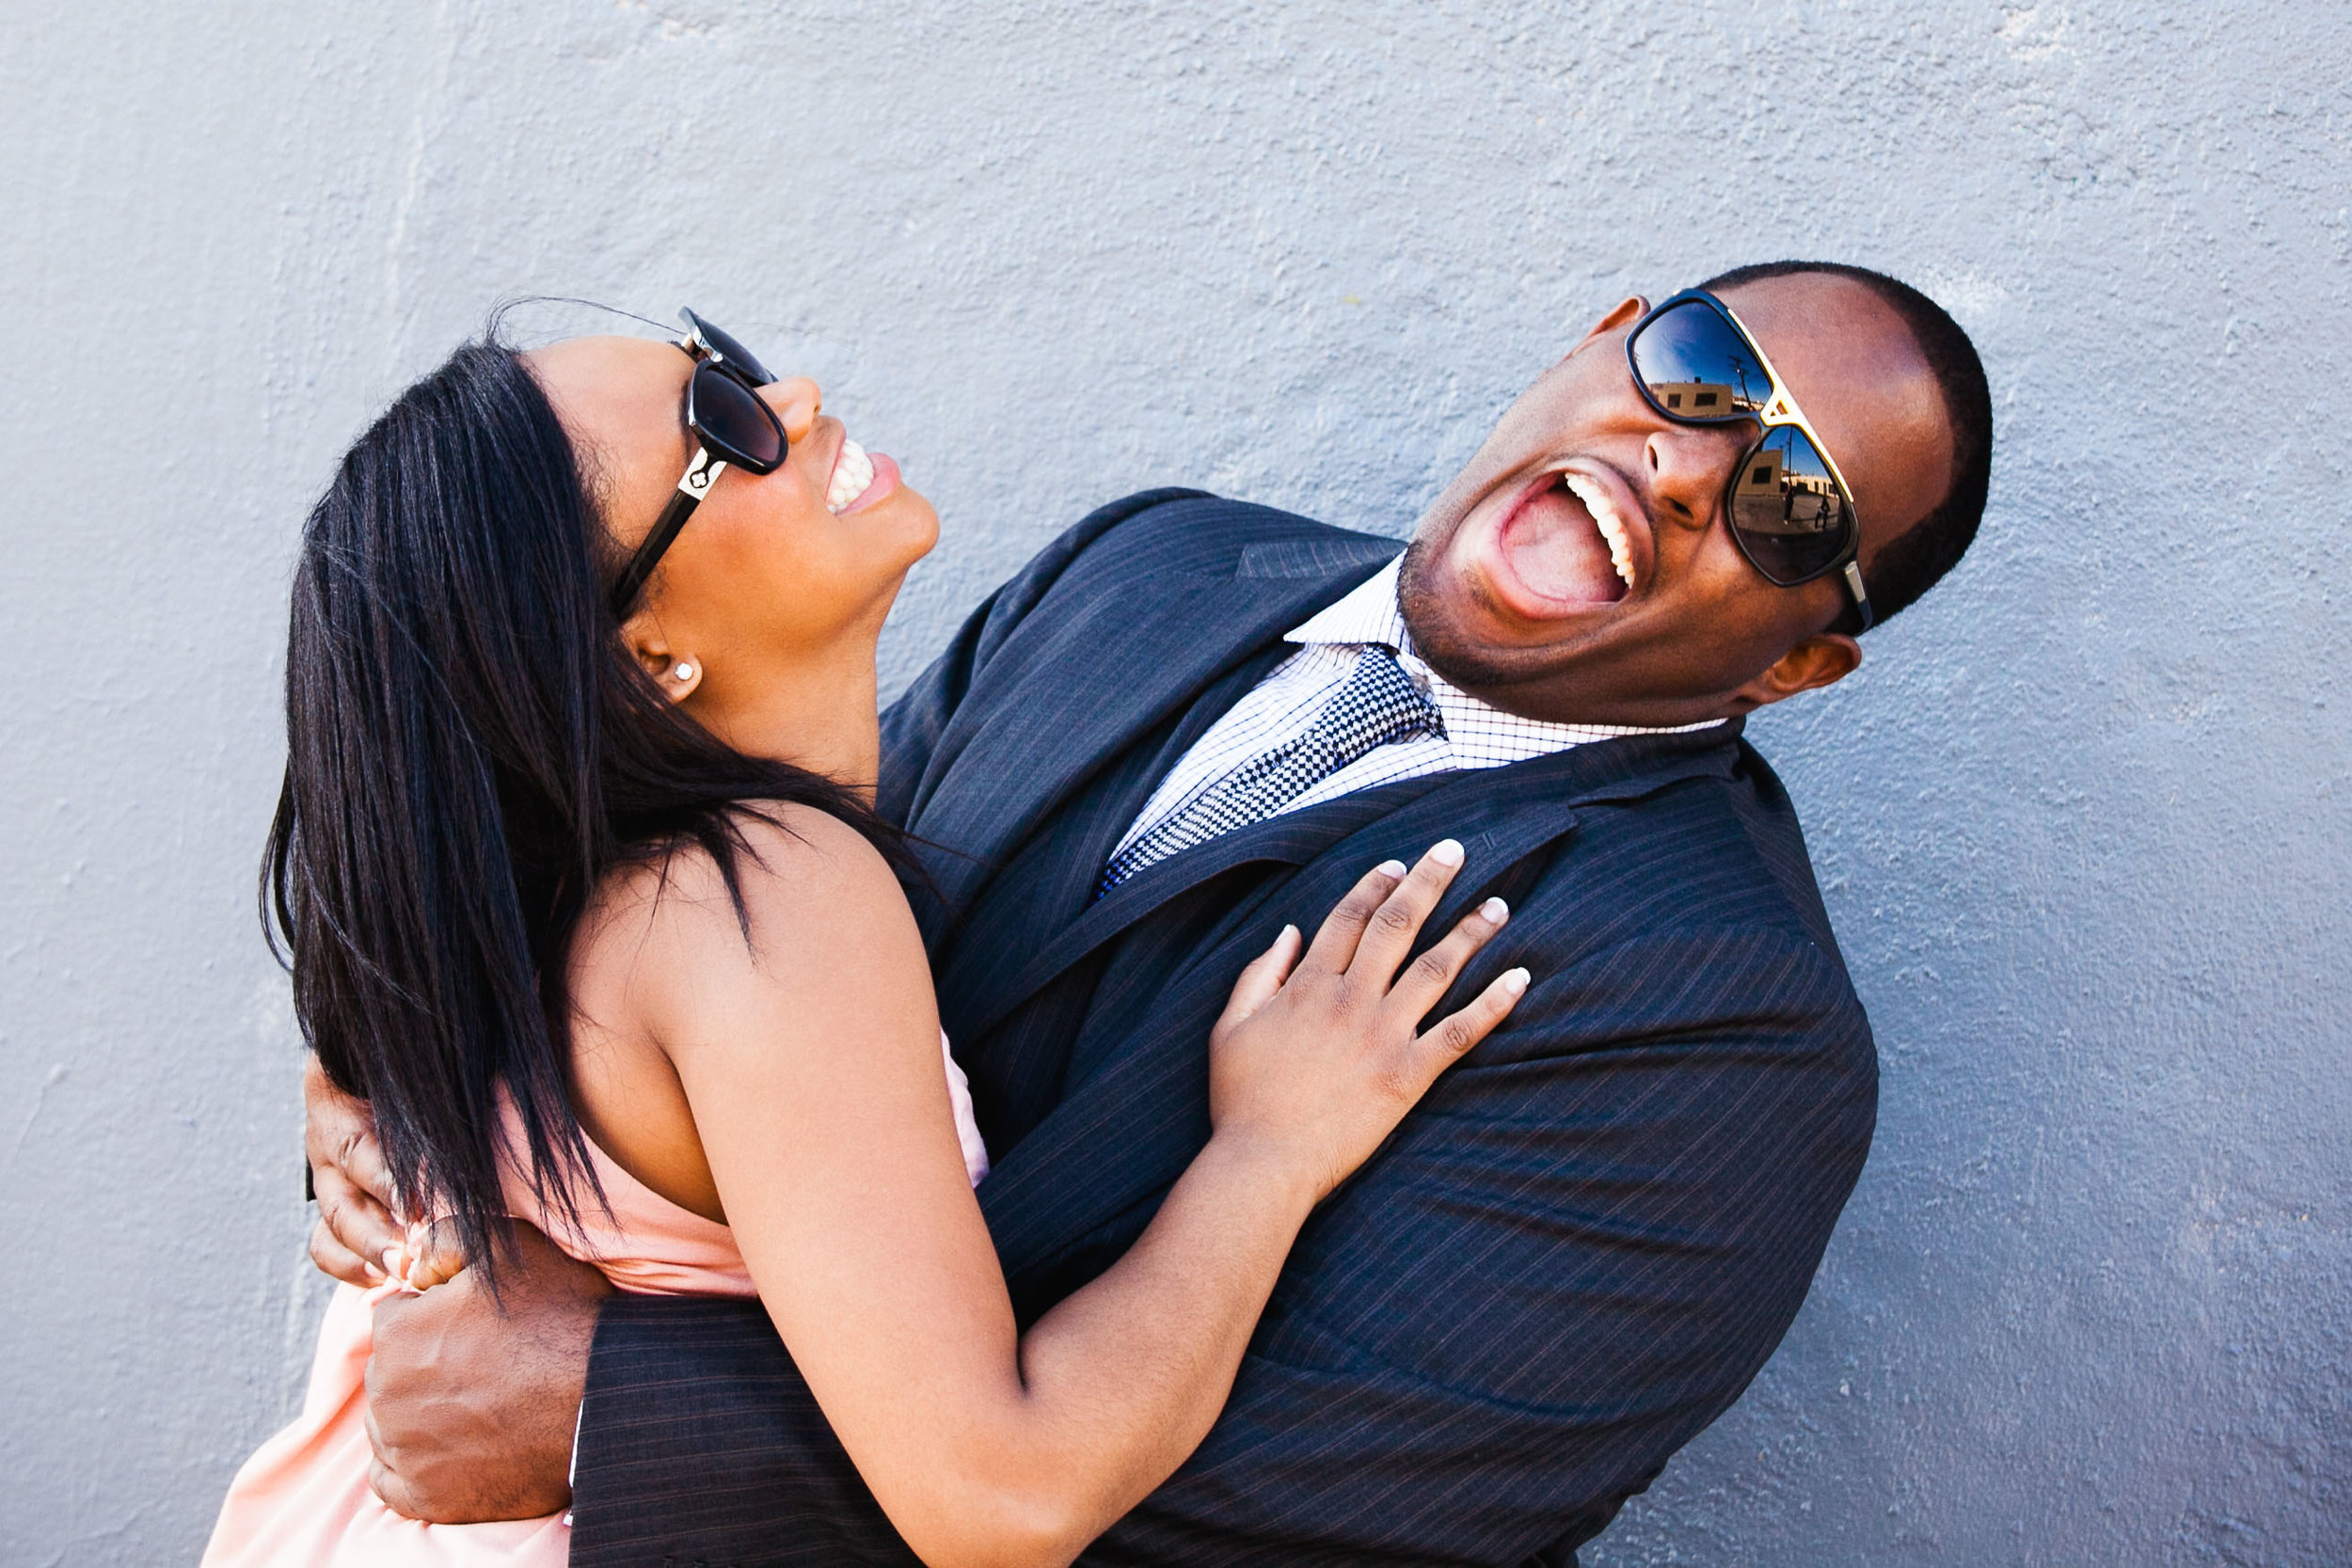 downtown-los-angeles-engagement-photo-African-Amercian-couple.jpg